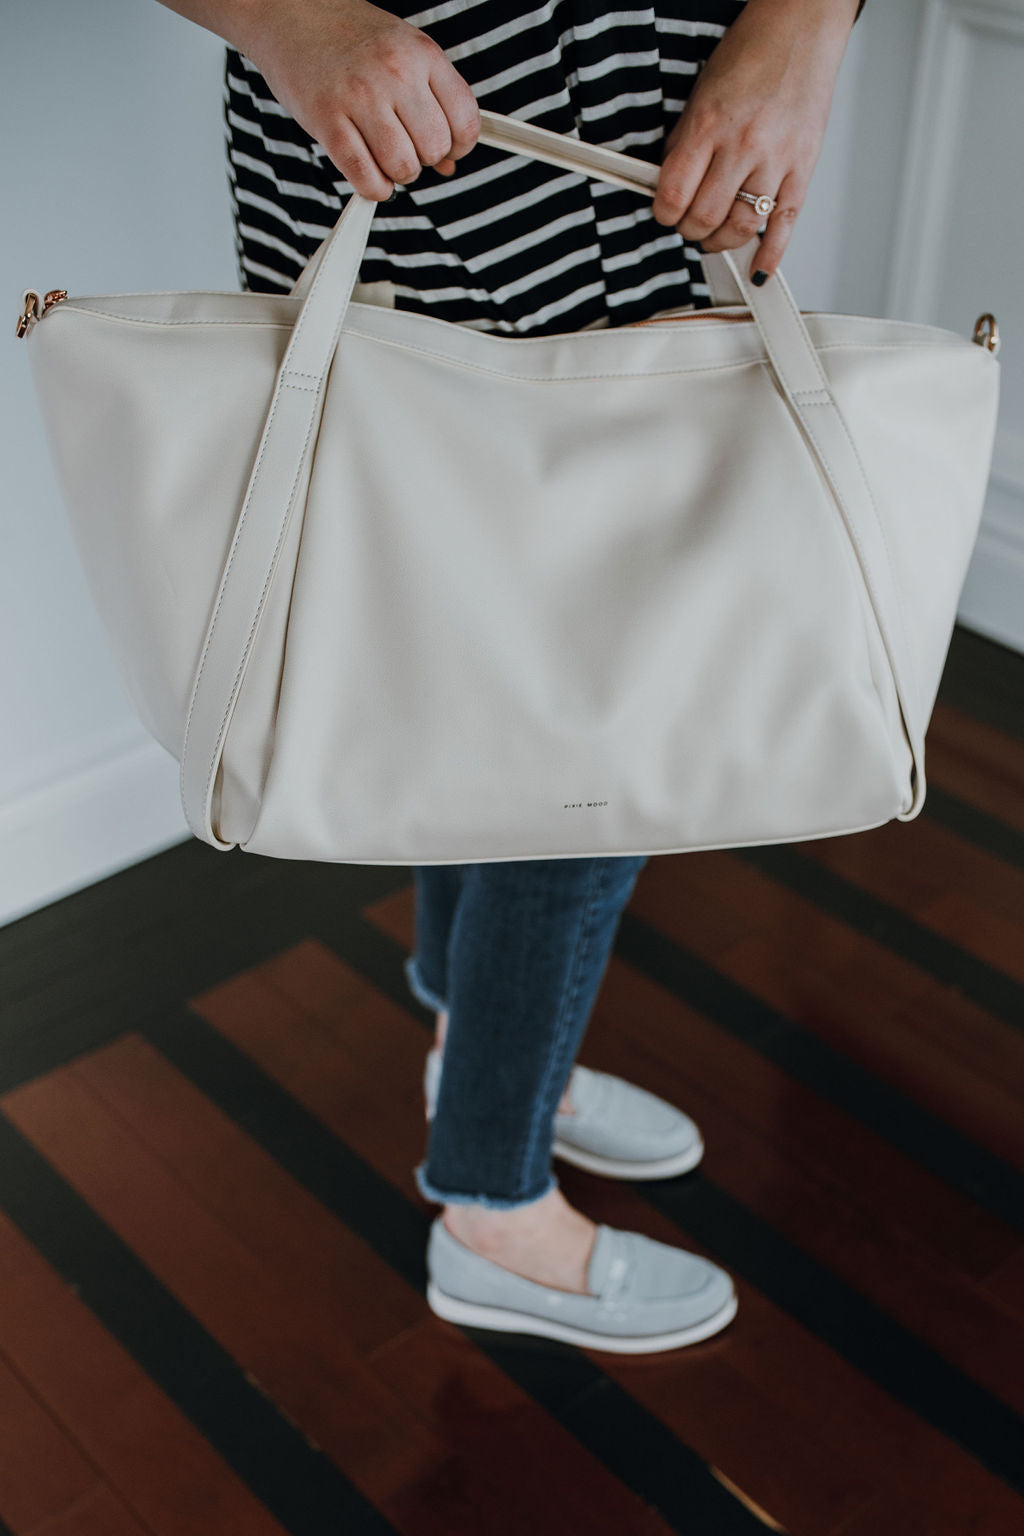 Sac de weekend Pixie mood en cuir vegan canadien crème et rose gold